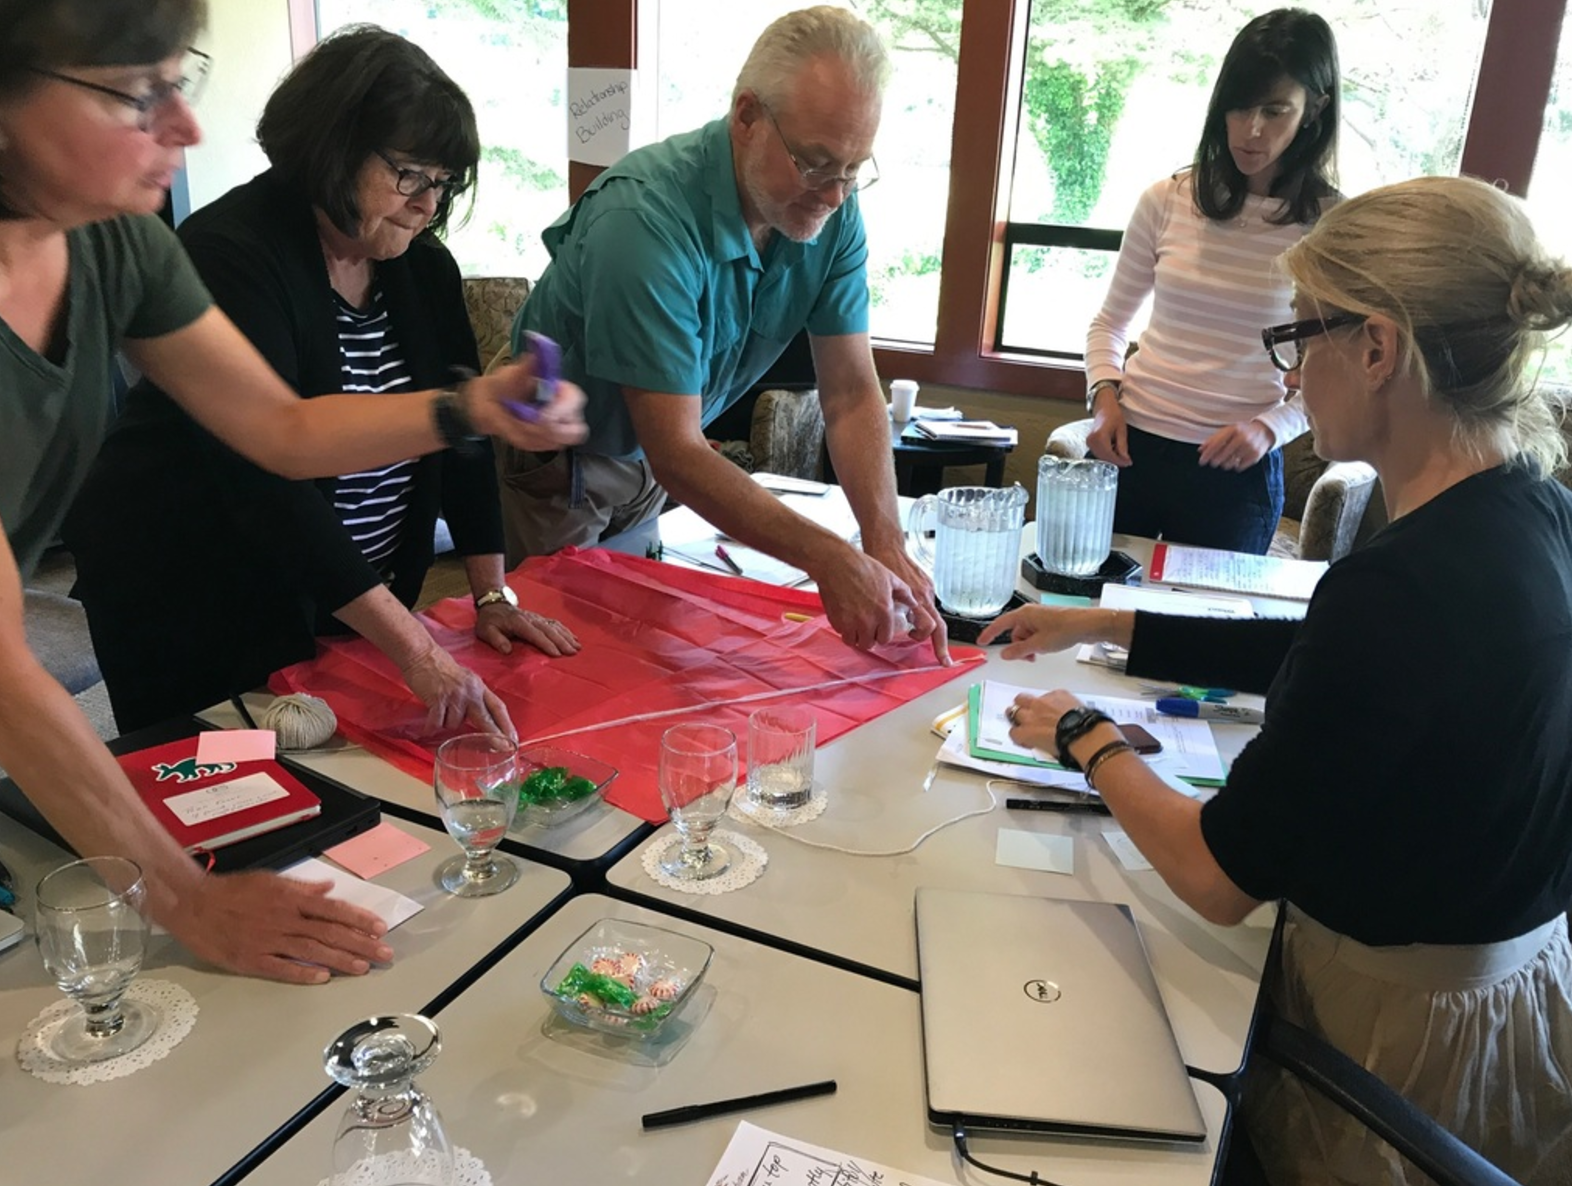 Oregon Episcopal School administrative team designing parachutes during a recent session. Exercises like these help us get in the mindset for innovation and creative risk-taking.